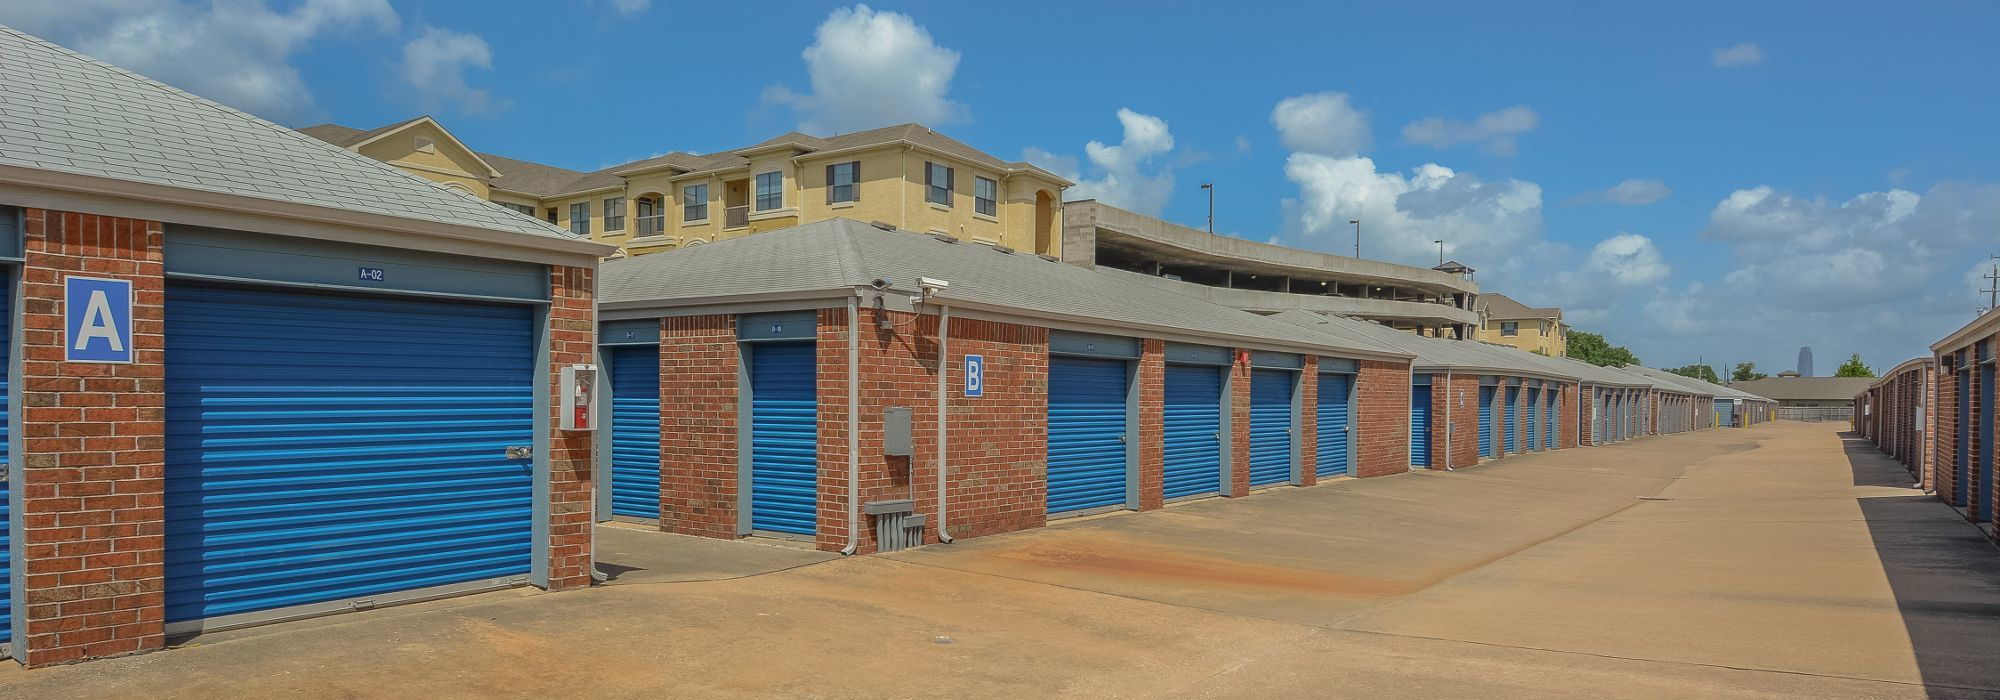 Self storage in Houston TX